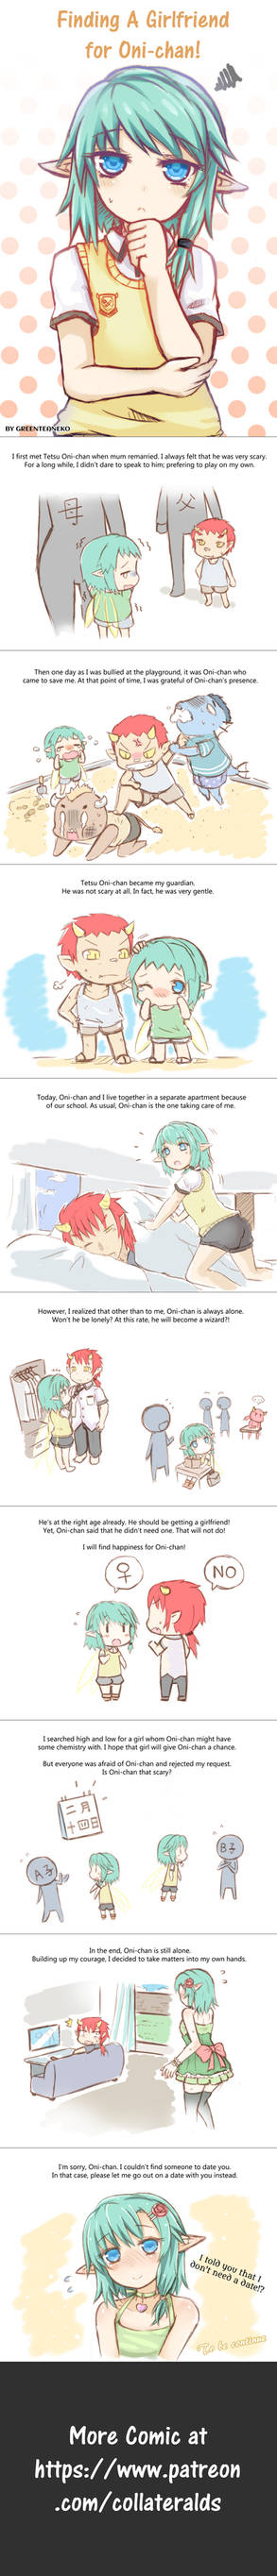 Webcomic: Finding A Girlfriend For Oni-chan!